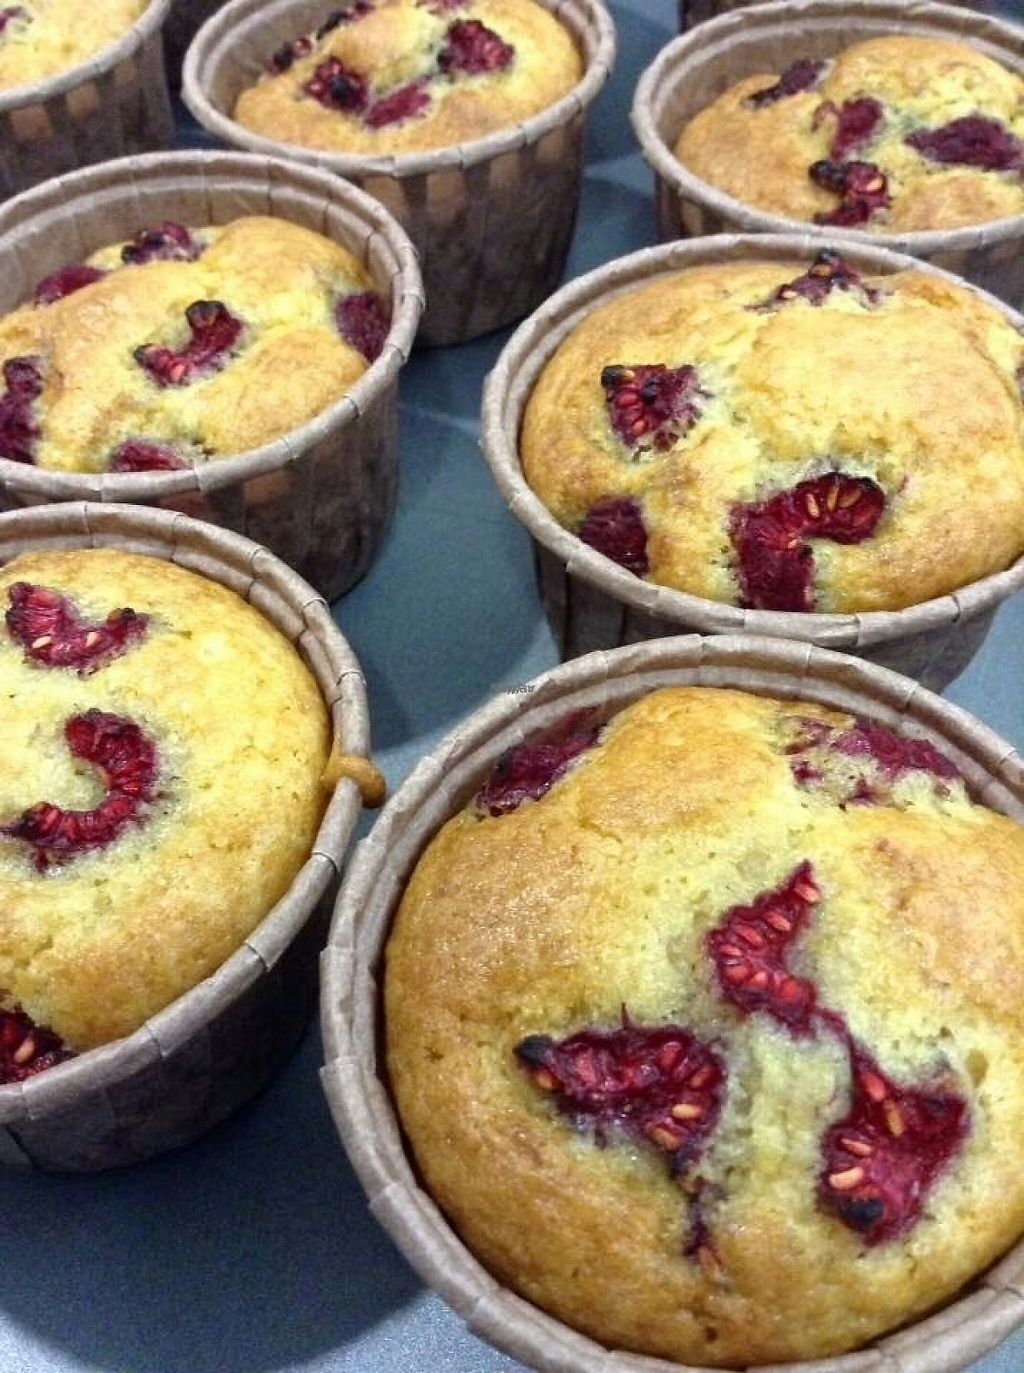 """Photo of Alice in Wonder Pie  by <a href=""""/members/profile/Ceresmar"""">Ceresmar</a> <br/>vanilla and raspberry muffins (v)  <br/> April 4, 2017  - <a href='/contact/abuse/image/89279/244693'>Report</a>"""